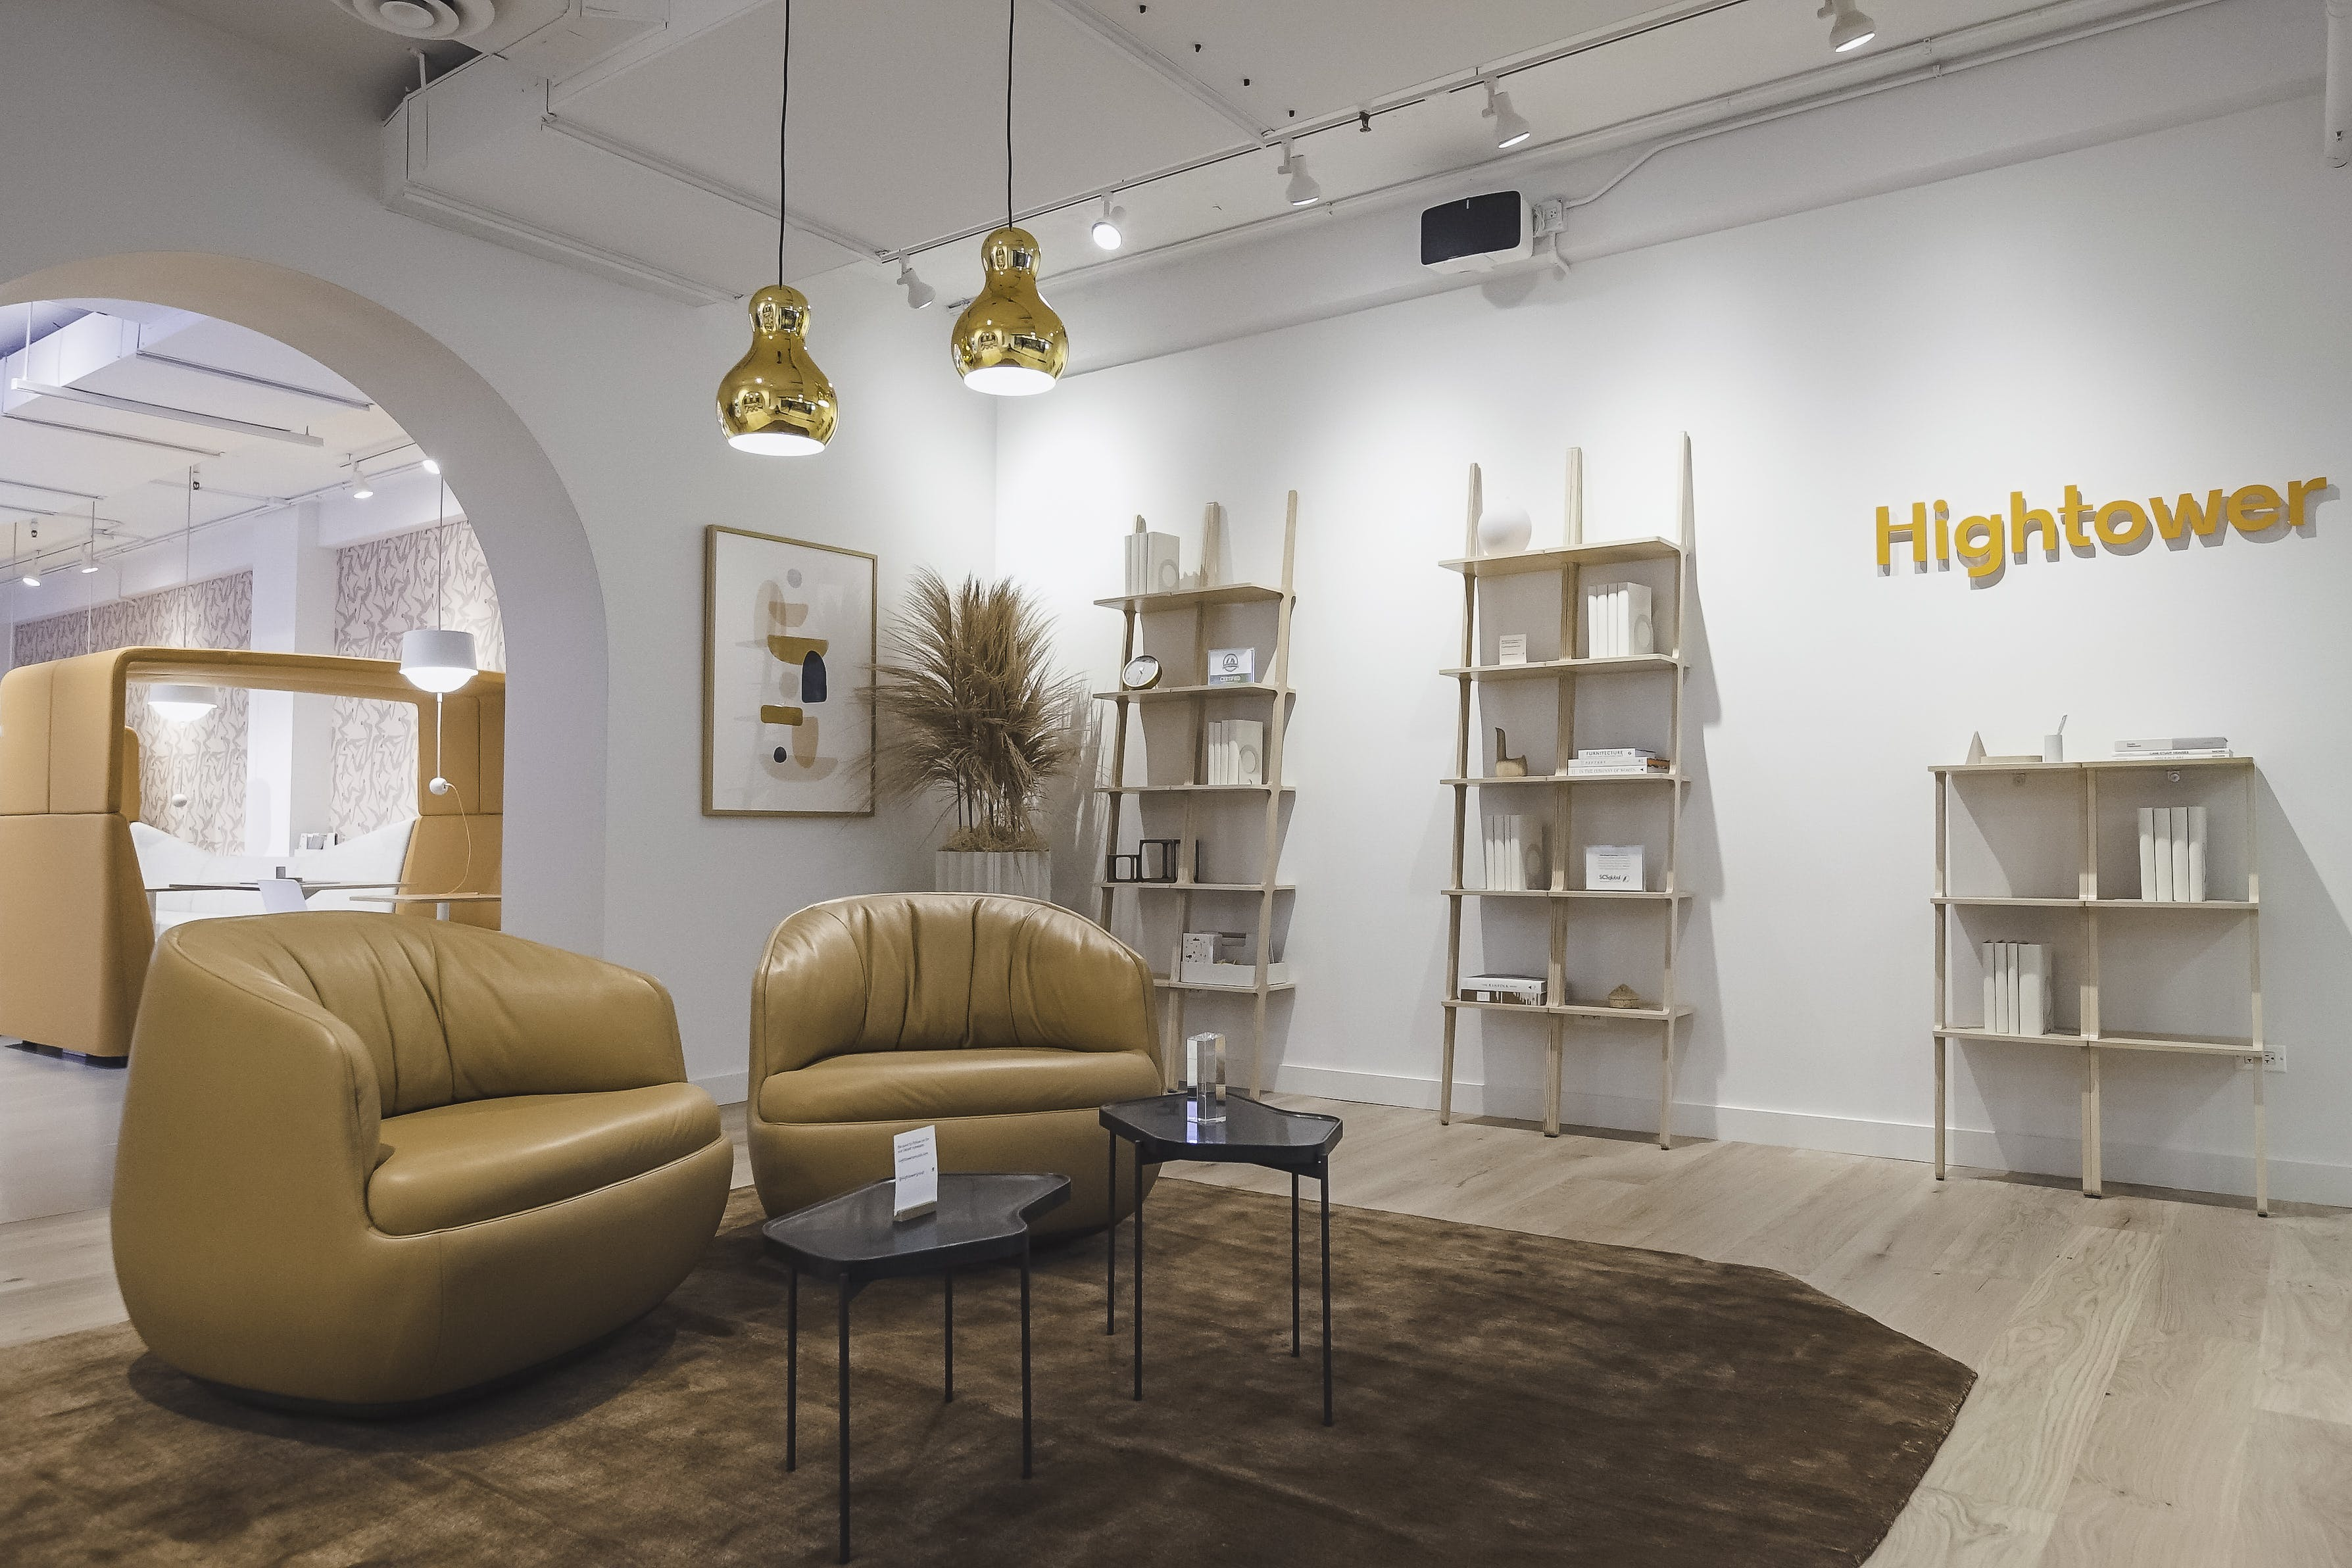 Hightower's Chicago Showroom at theMART showroom.